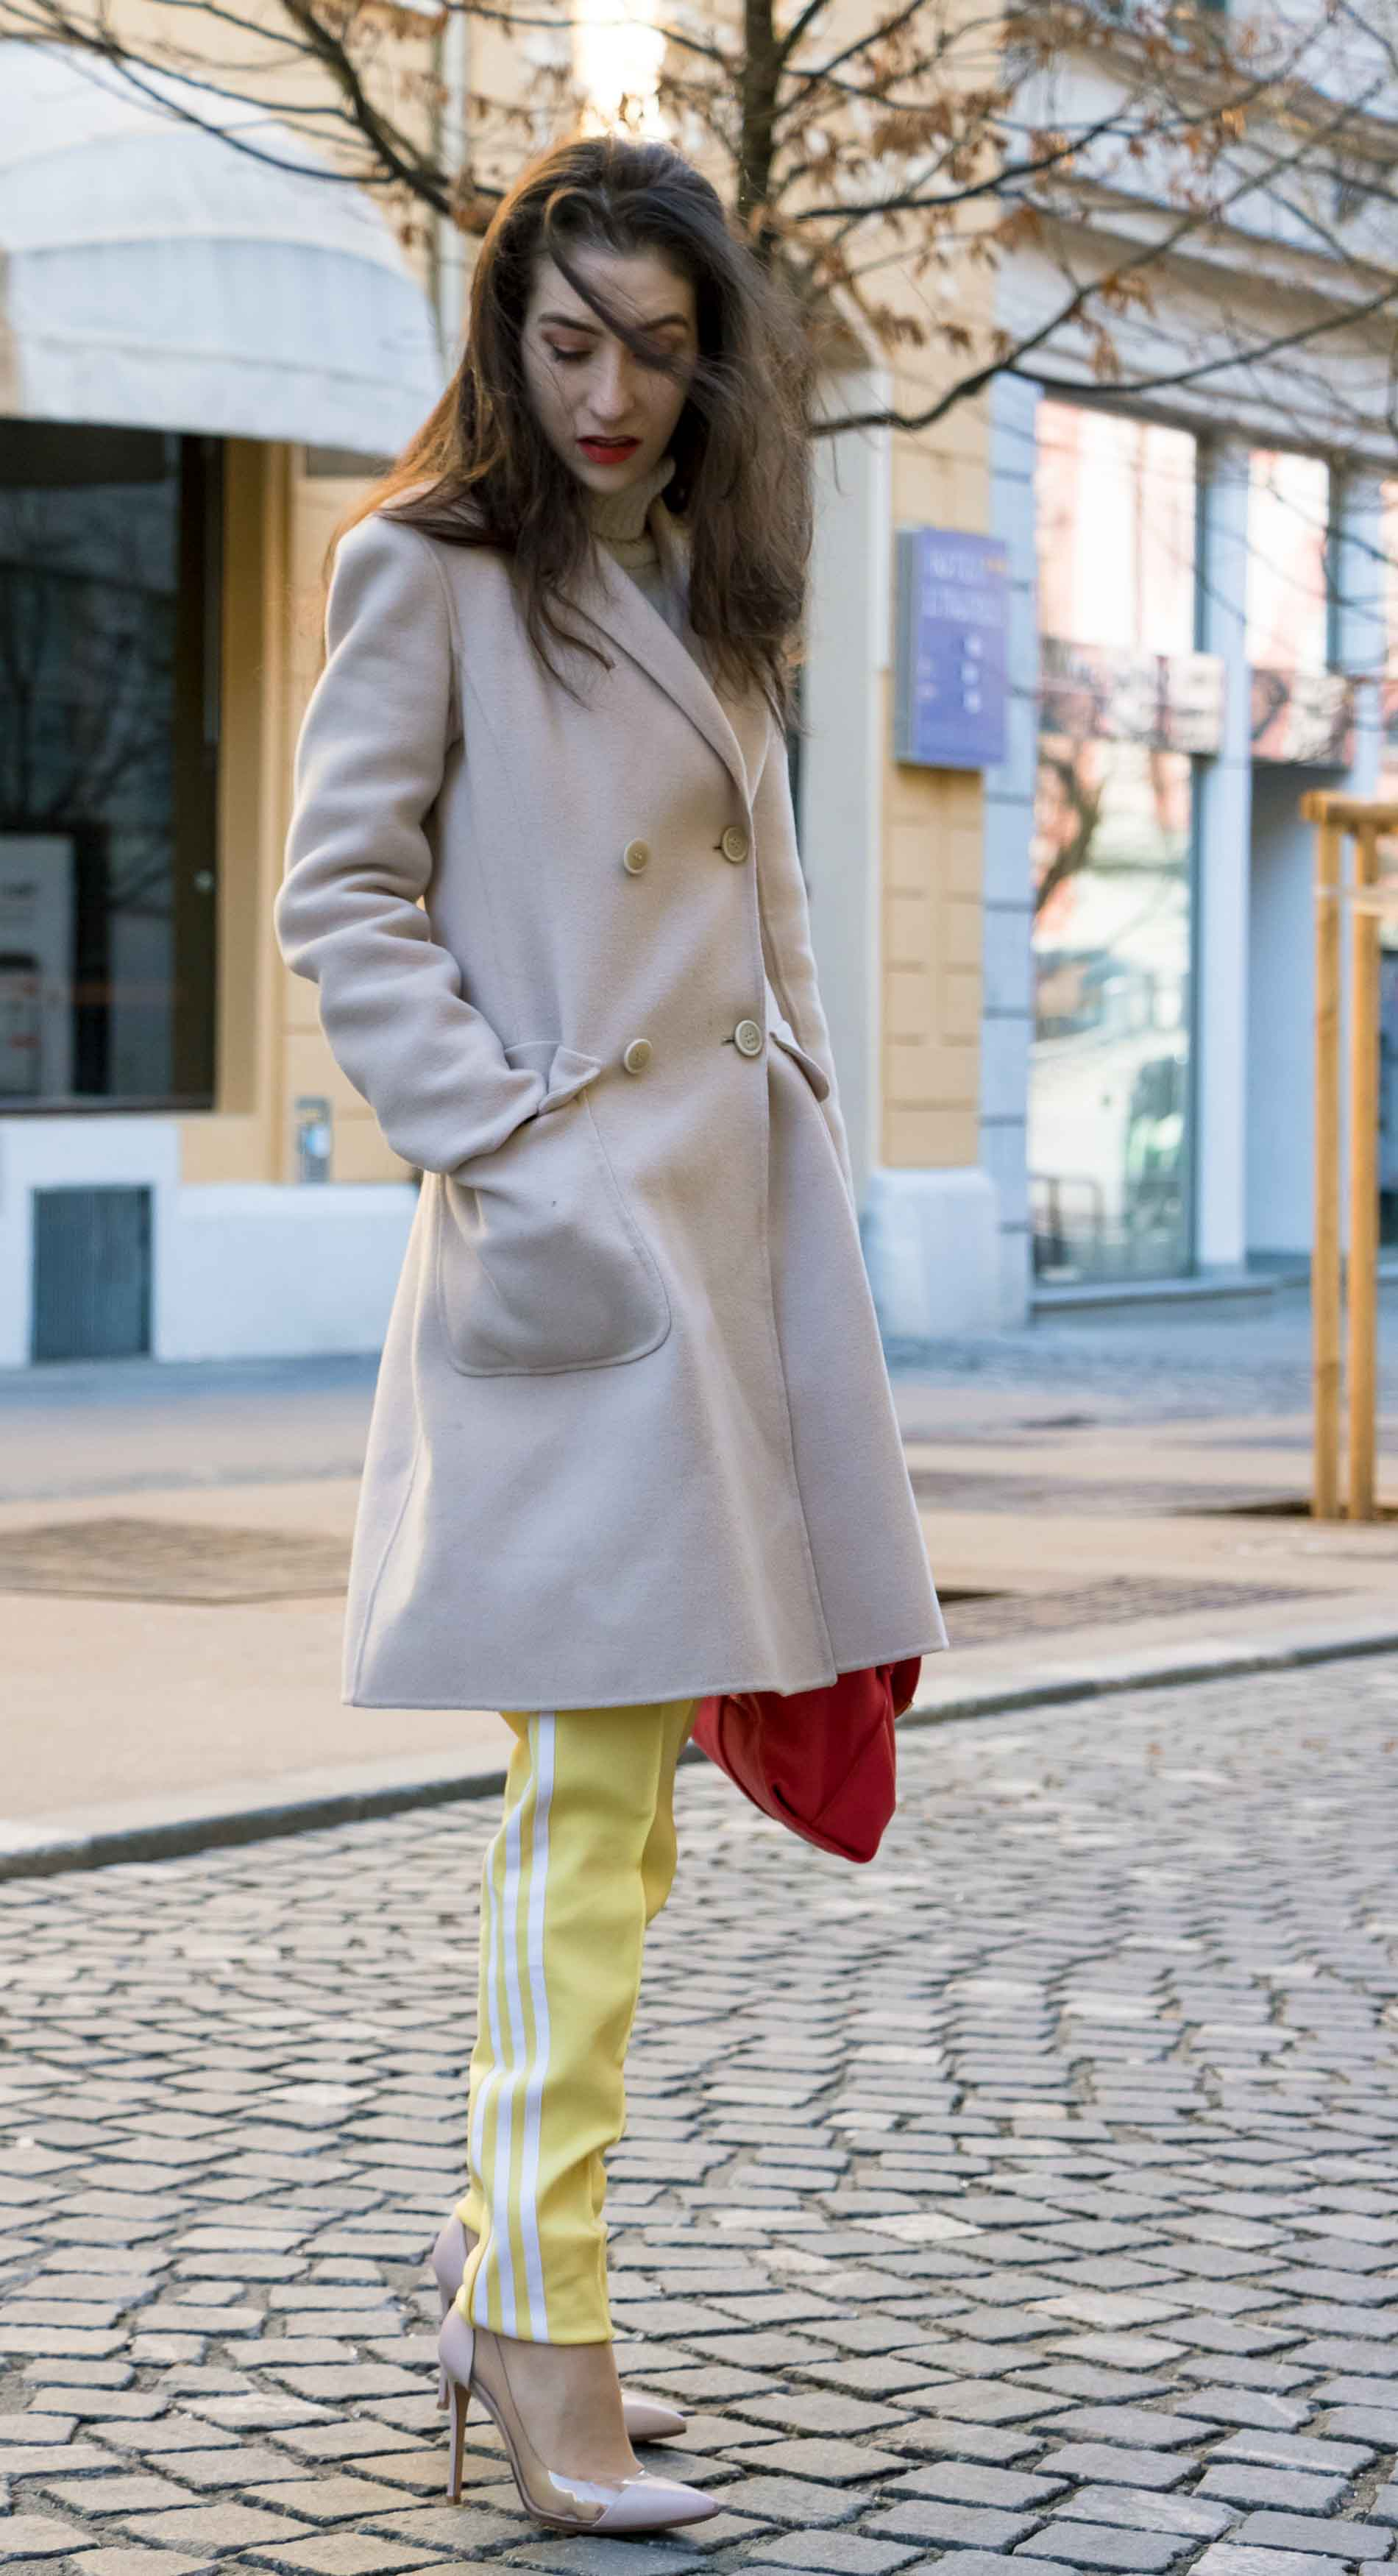 Fashion Blogger Veronika Lipar of Brunette from Wall Street dressed in yellow track pants with white stripes from Adidas, white turtleneck knit sweater, off-white pastel double breasted coat from Weekend Max Mara, blush powder transparent plexi pumps shoes from Gianvito Rossi, pink top handle bag from See by Chloe while standing on the street in Ljubljana on a cold spring day